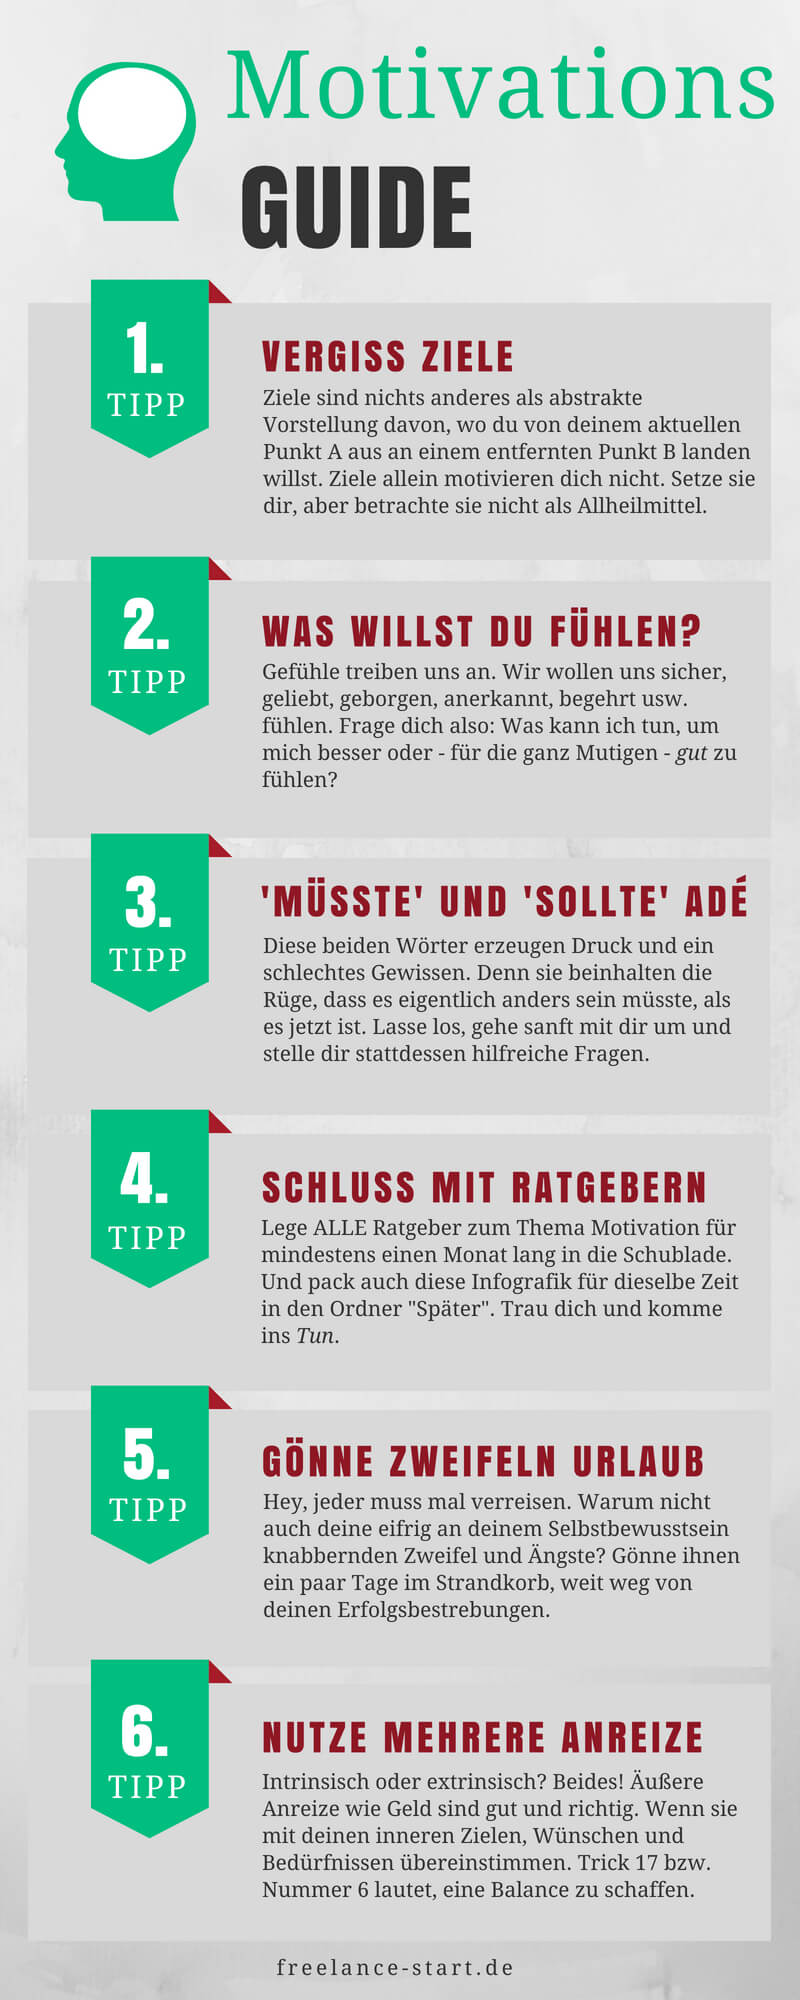 fs-infografik-motivationsguide